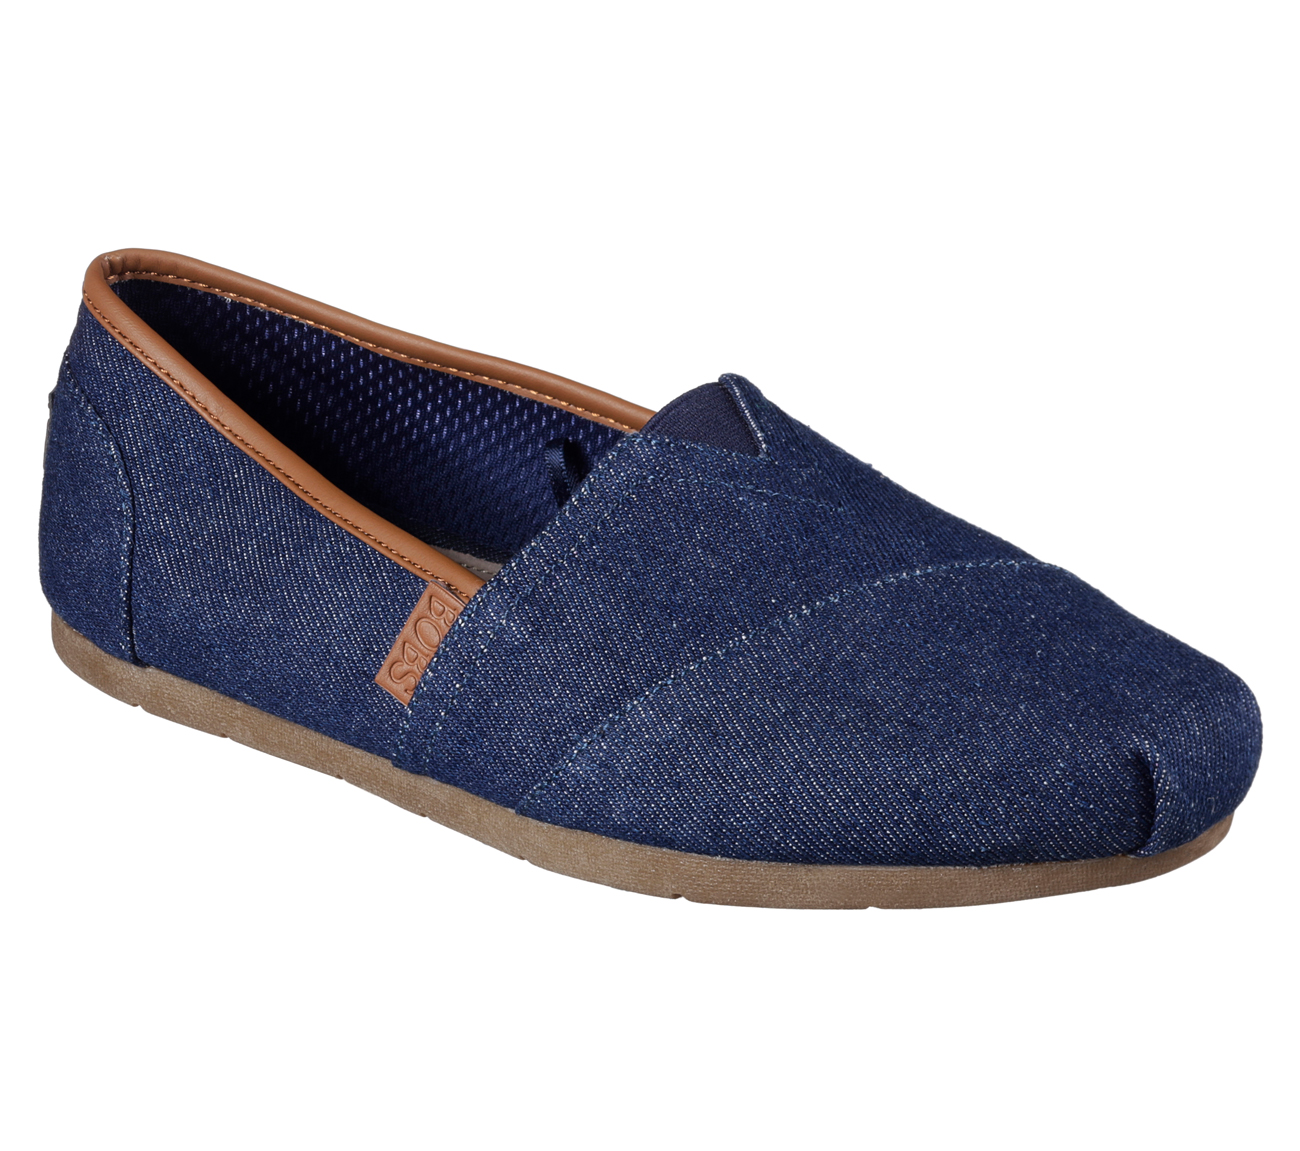 Denim Slip On Shoes Men Wide